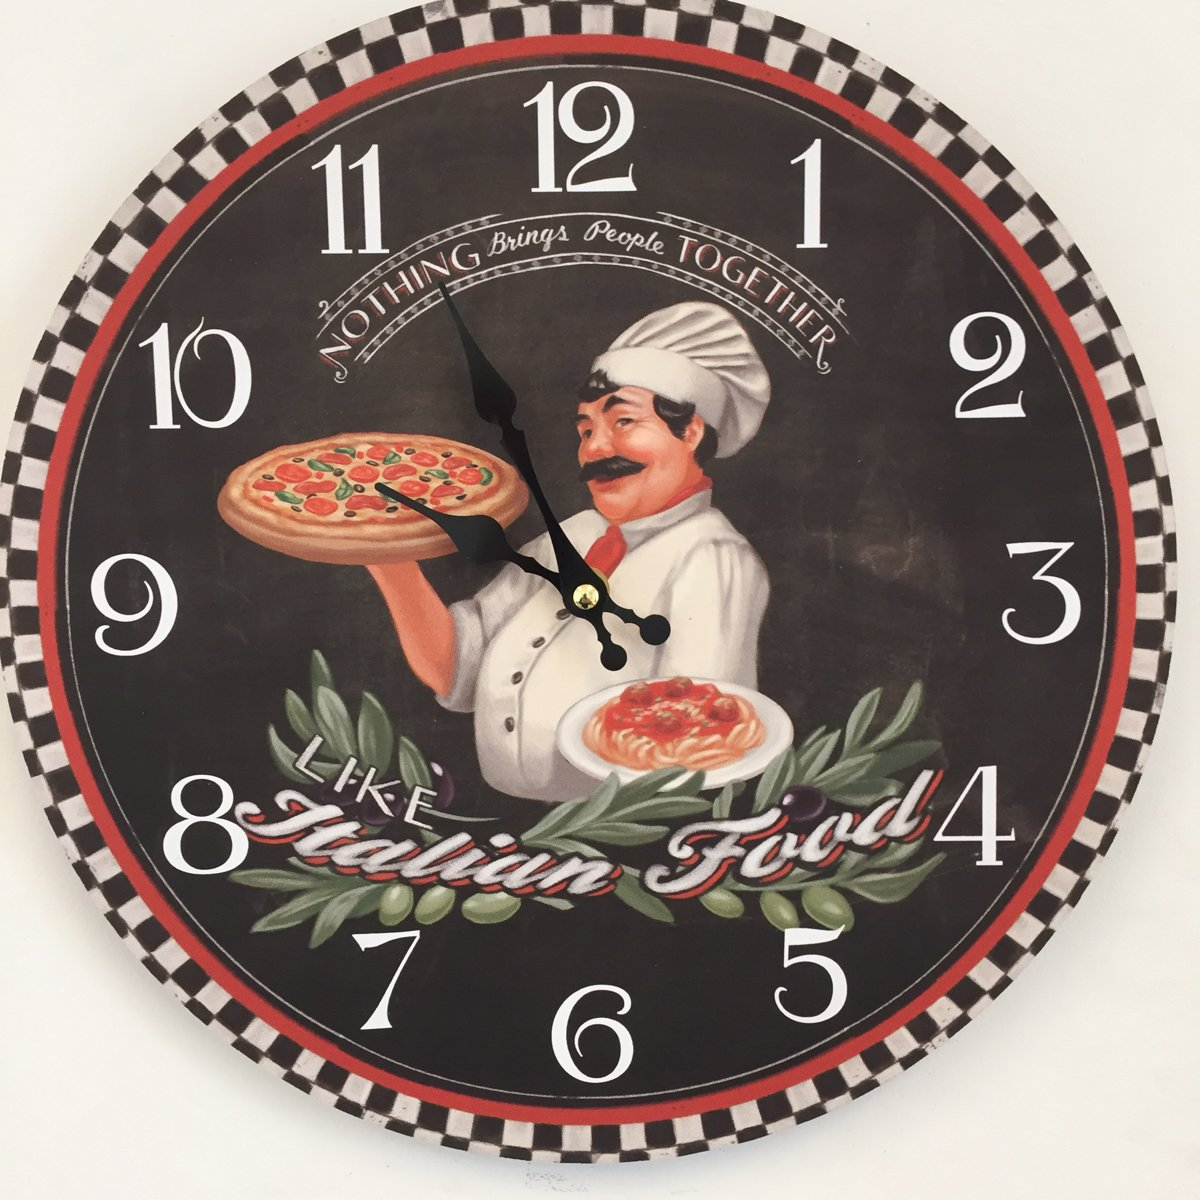 Square Wall Clock of Horse Racing running The Race Size 19cm by 19cm